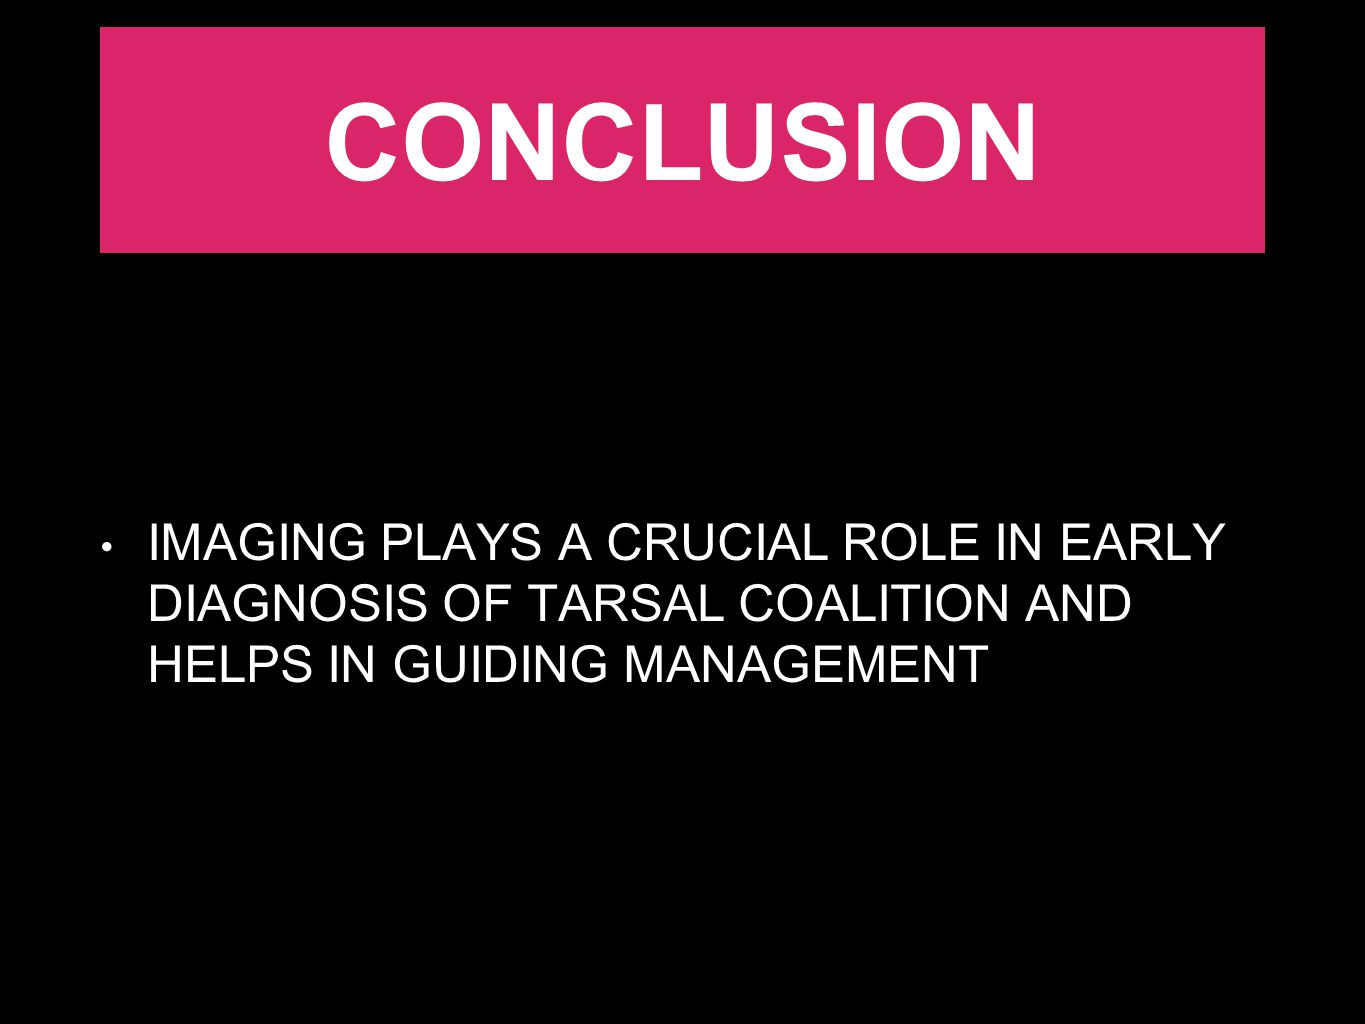 CONCLUSION IMAGING PLAYS A CRUCIAL ROLE IN EARLY DIAGNOSIS OF TARSAL COALITION AND HELPS IN GUIDING MANAGEMENT.